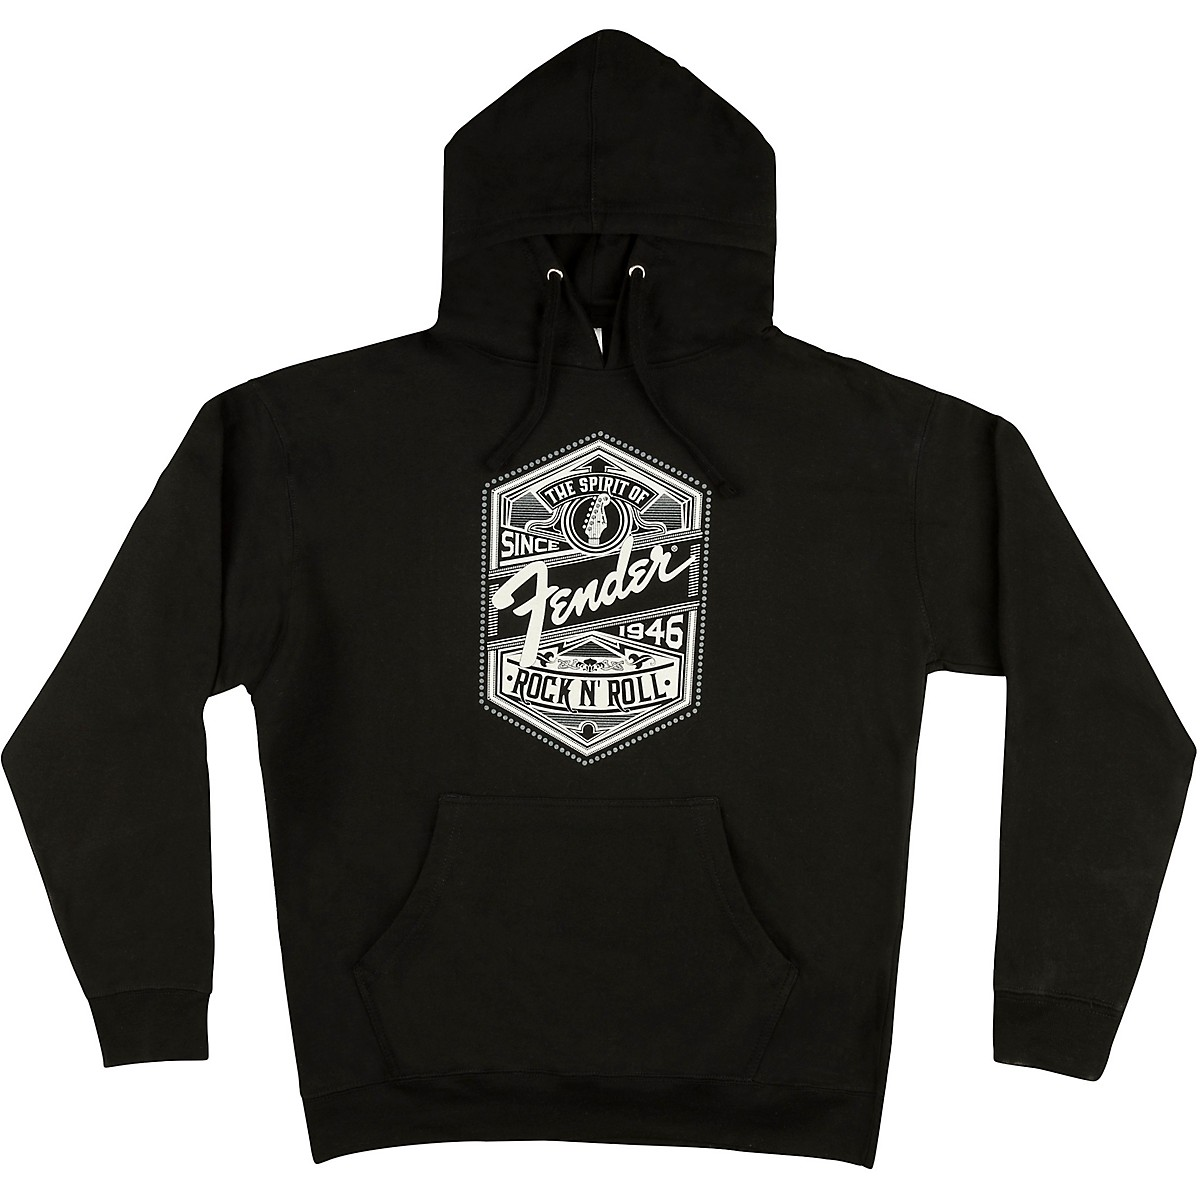 Fender Spirit of Rock 'N' Roll Hoodie